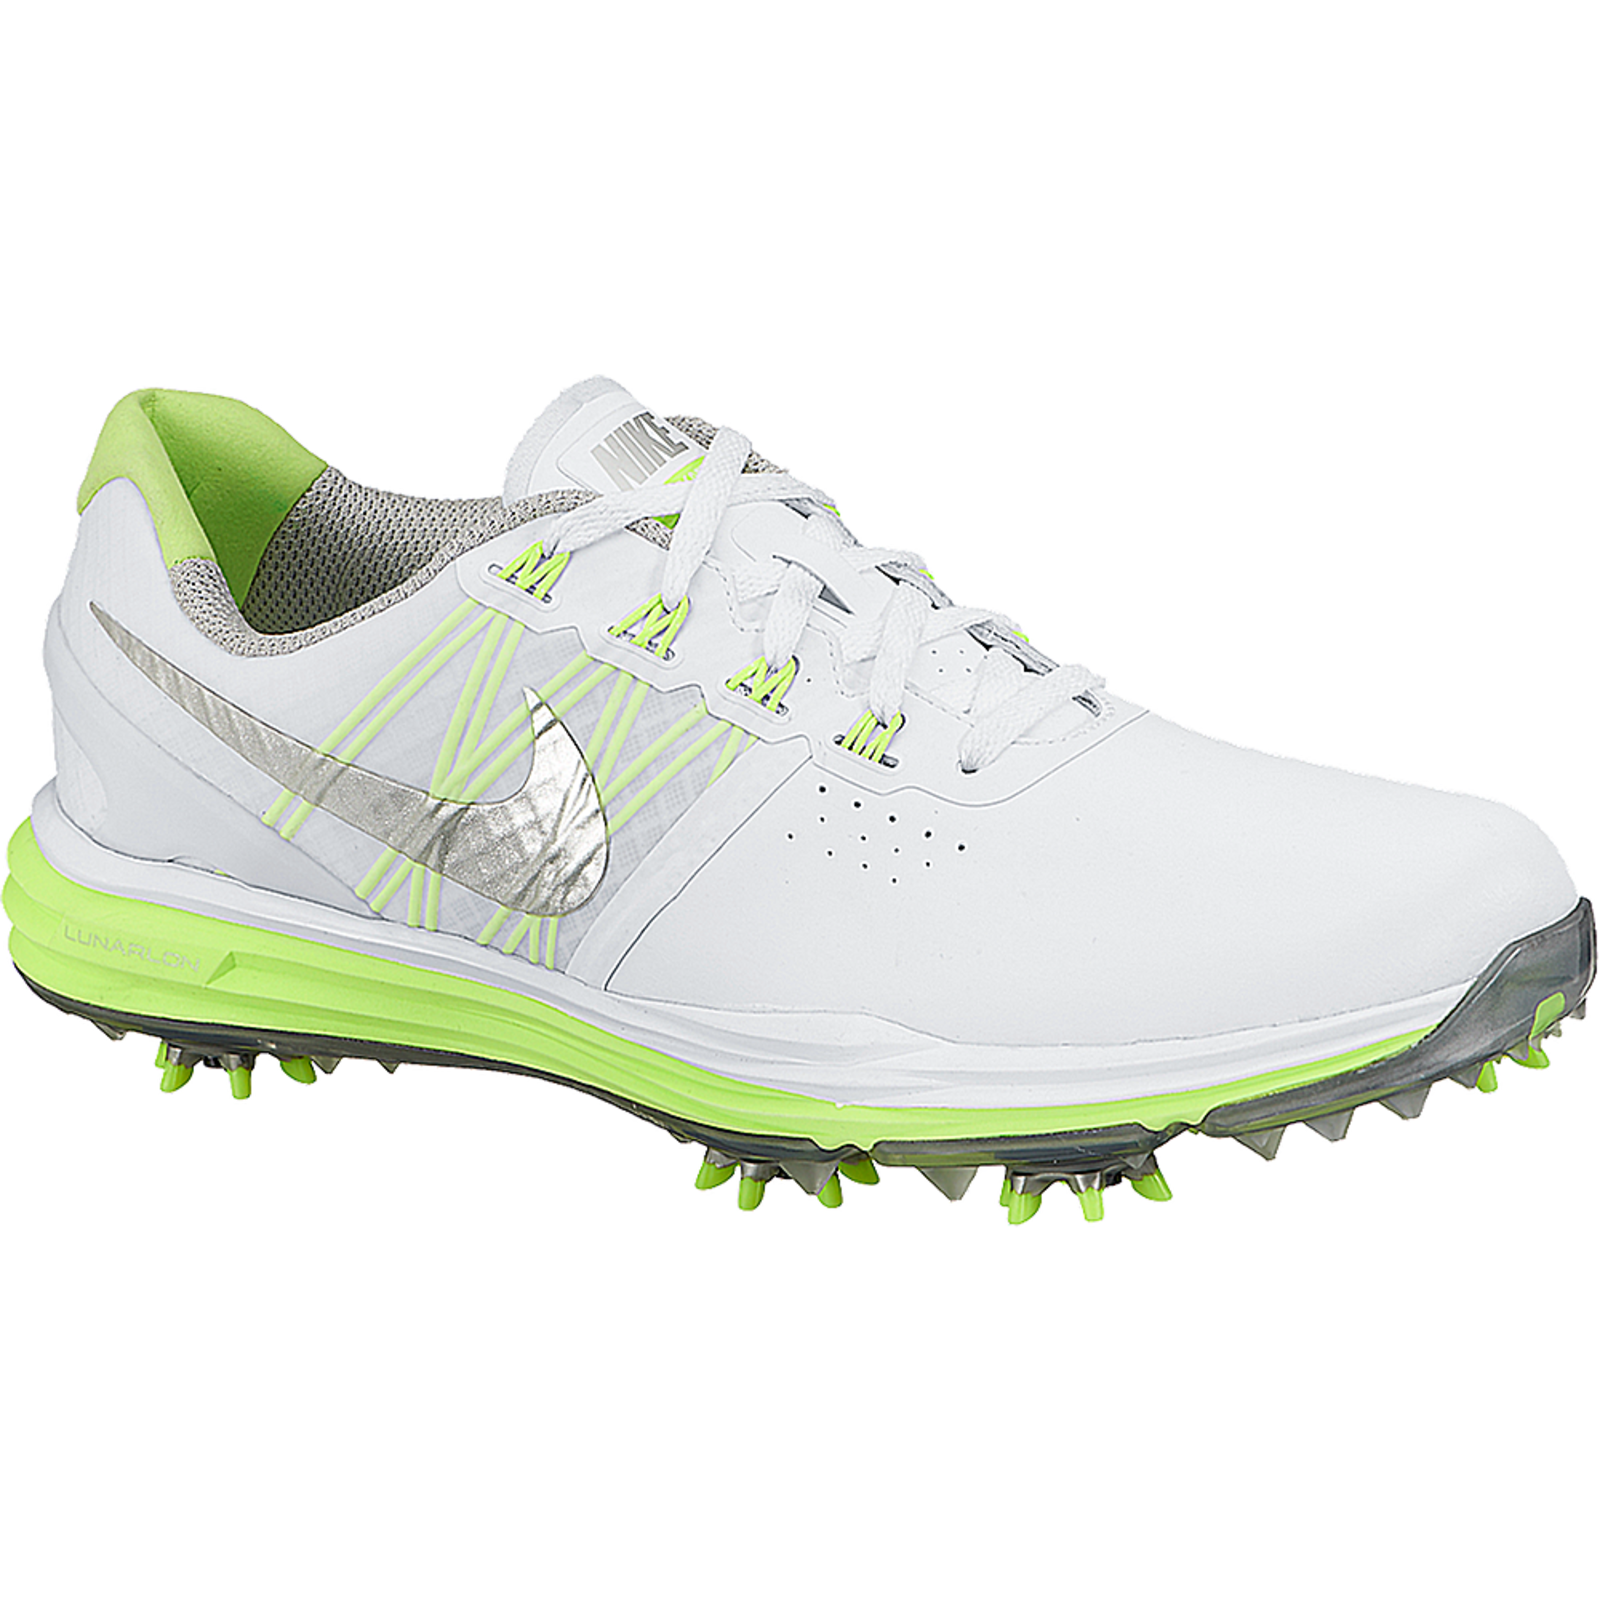 Find great deals on eBay for nike golf shoes. Shop with confidence.